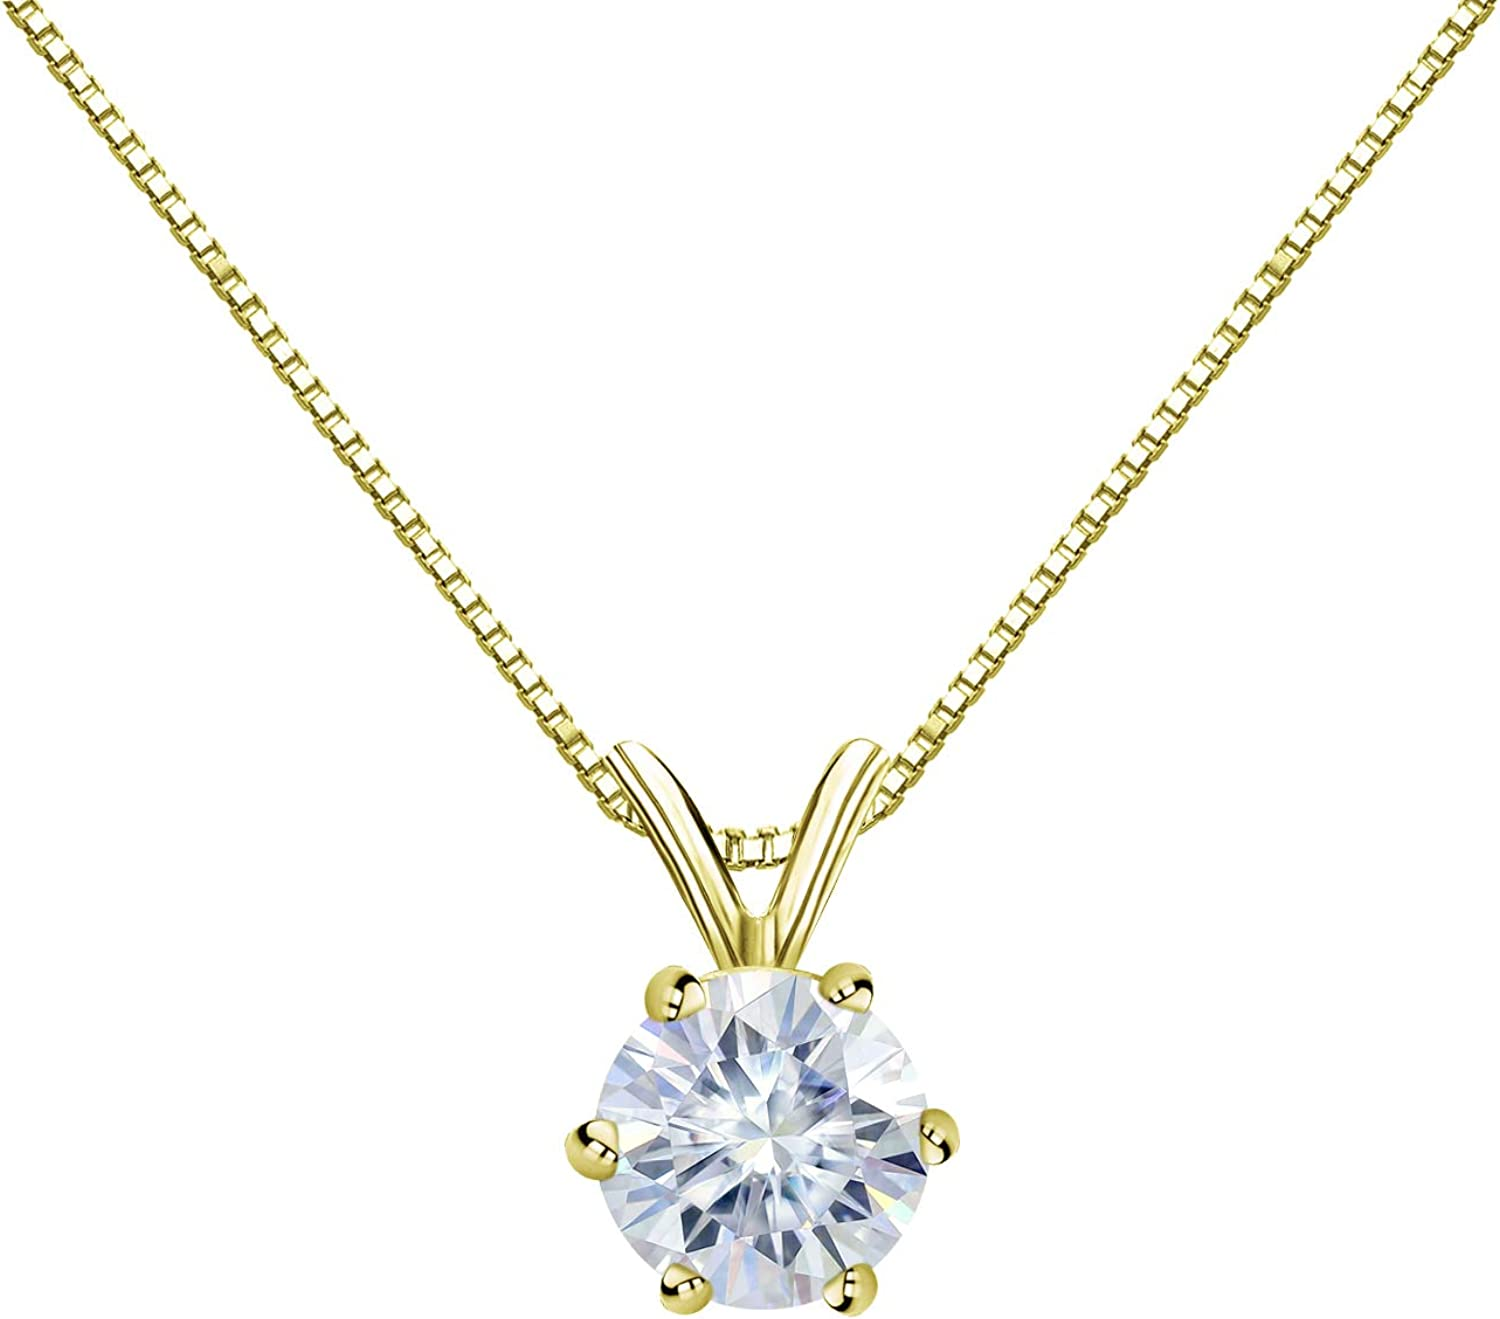 14K Gold Round 6-Prong Solitaire Gifts Ranking TOP5 Pendant 1 Necklace Moissanite